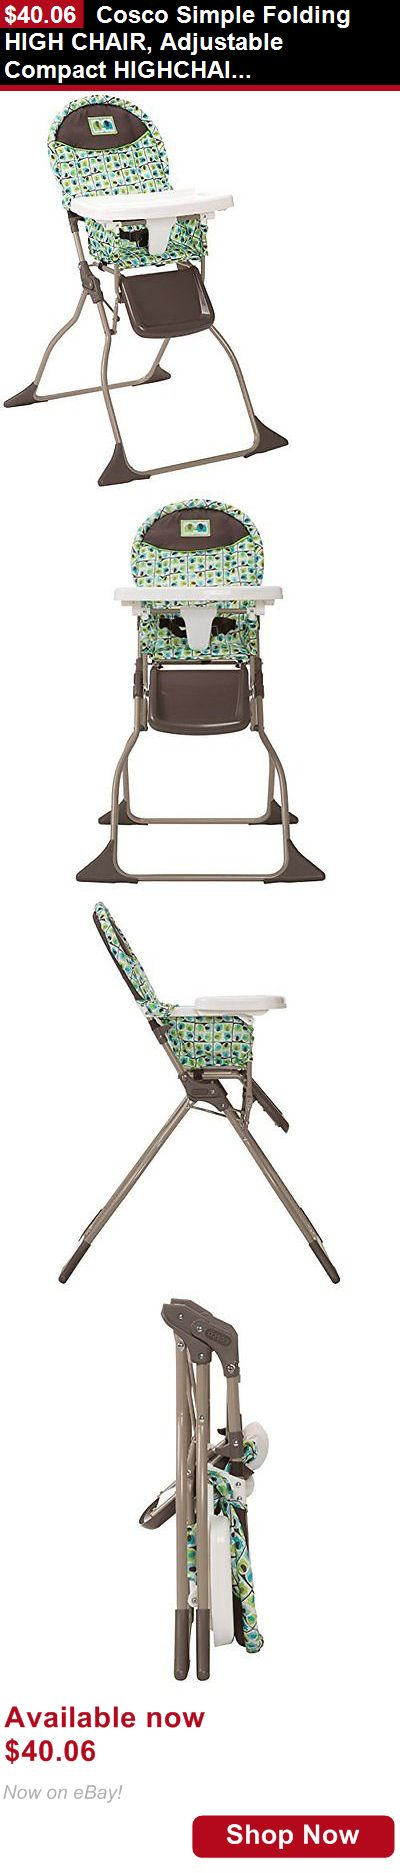 Baby High Chairs: Cosco Simple Folding High Chair, Adjustable Compact Highchair, Elephant Squares BUY IT NOW ONLY: $40.06